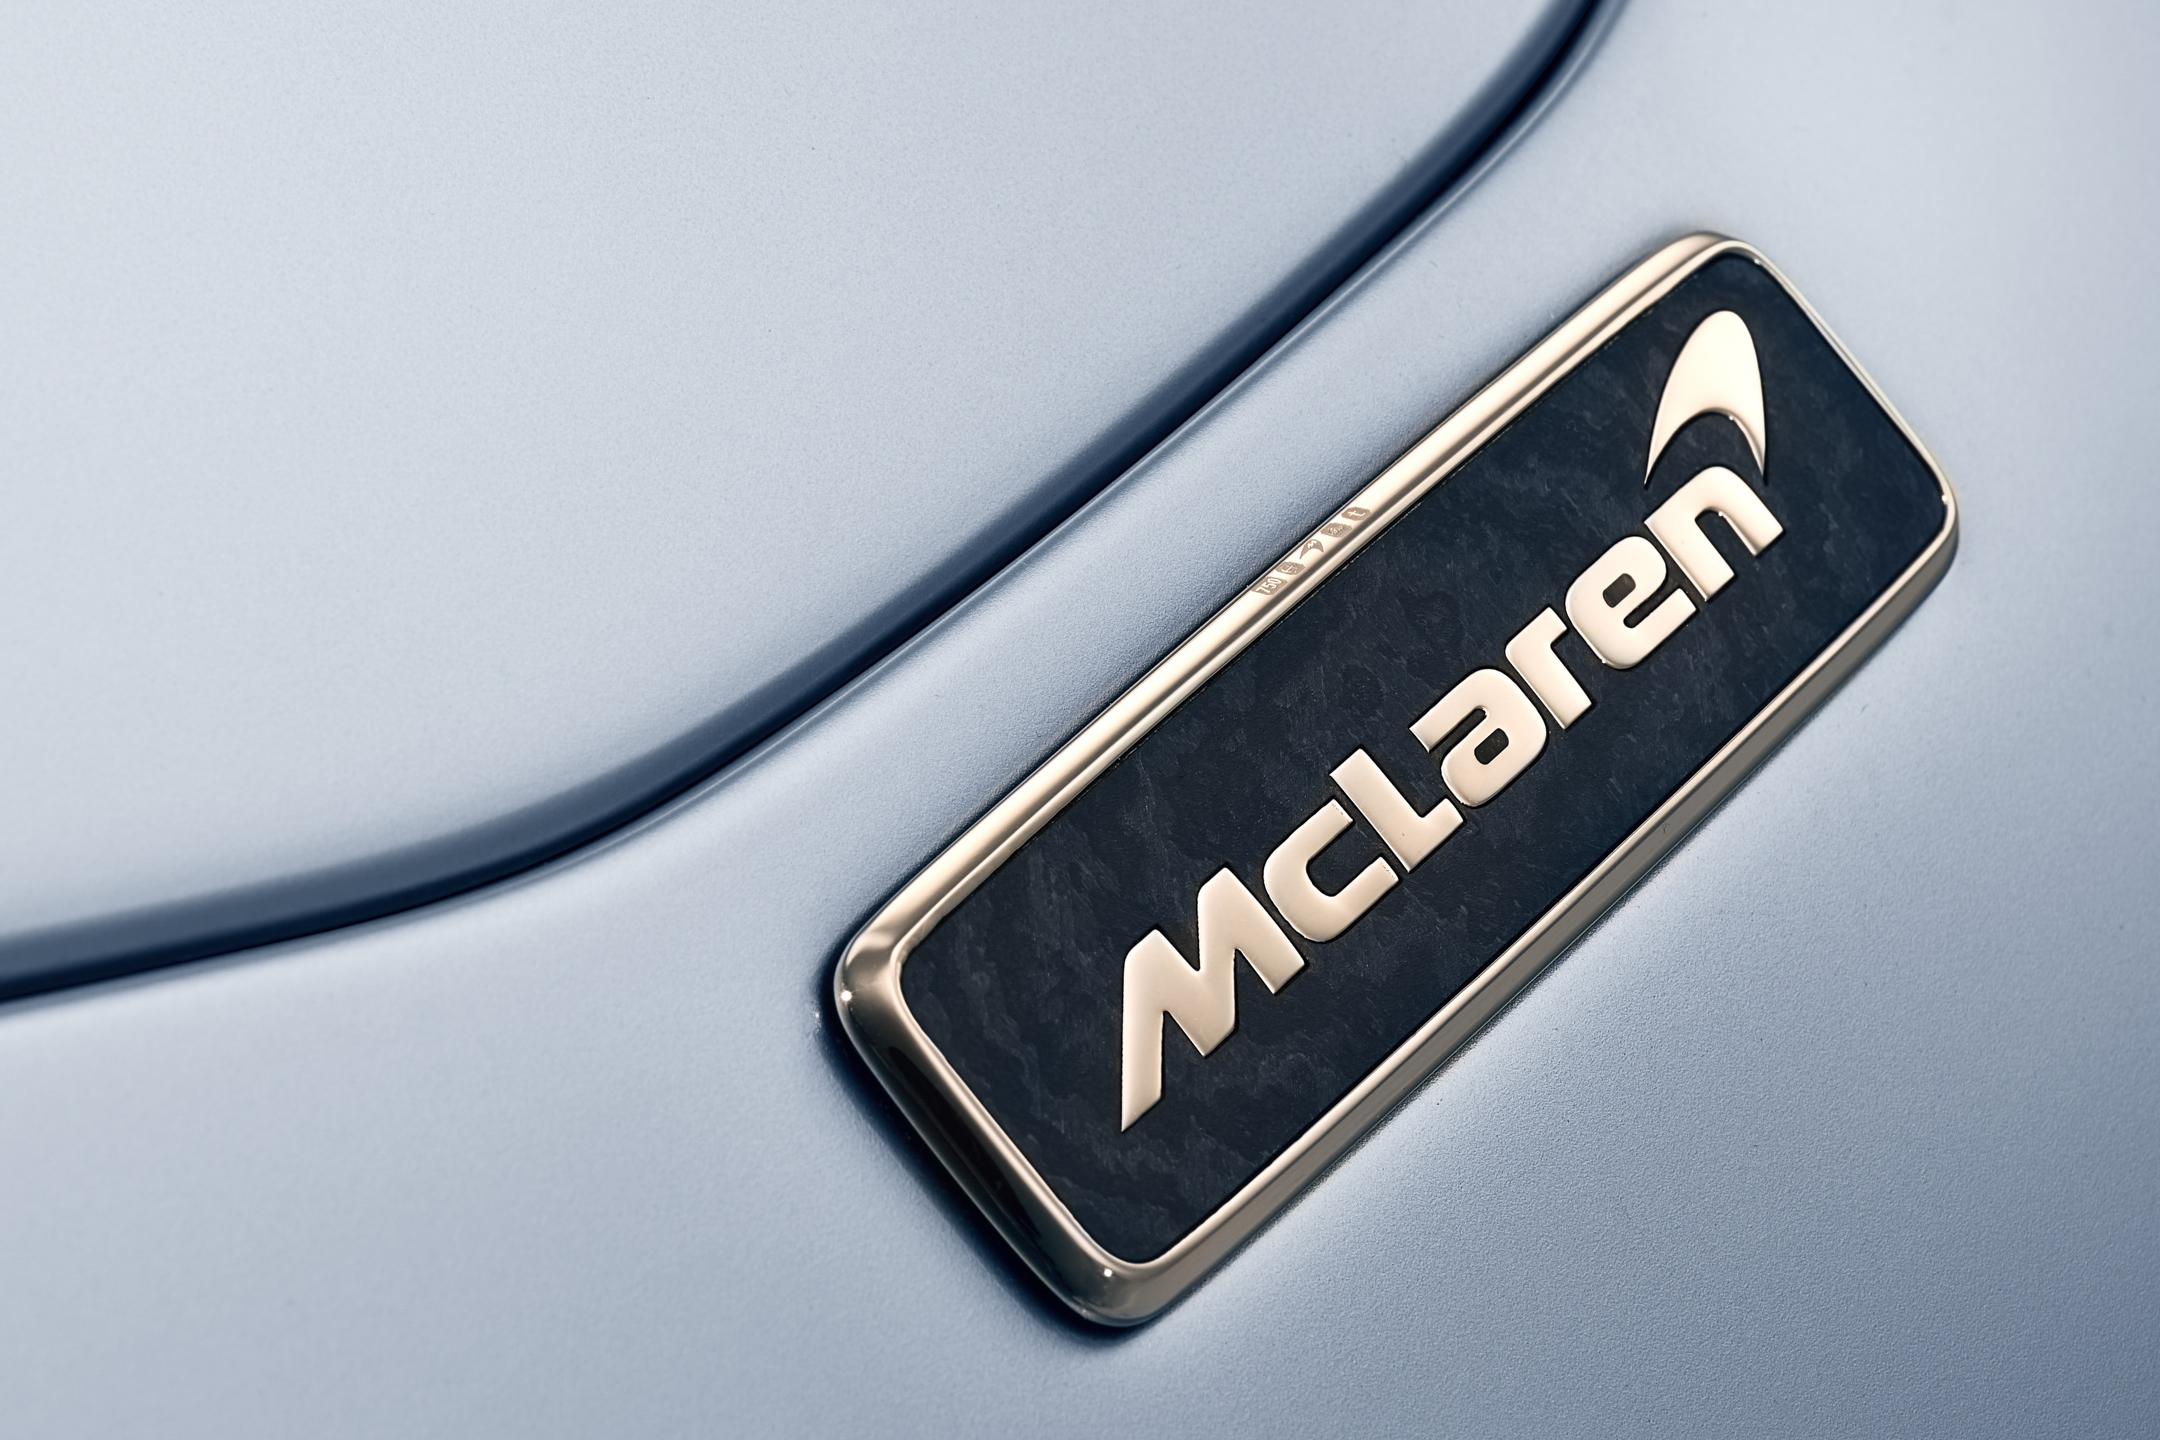 McLaren Speedtail - 2018 - logo badge - zoom